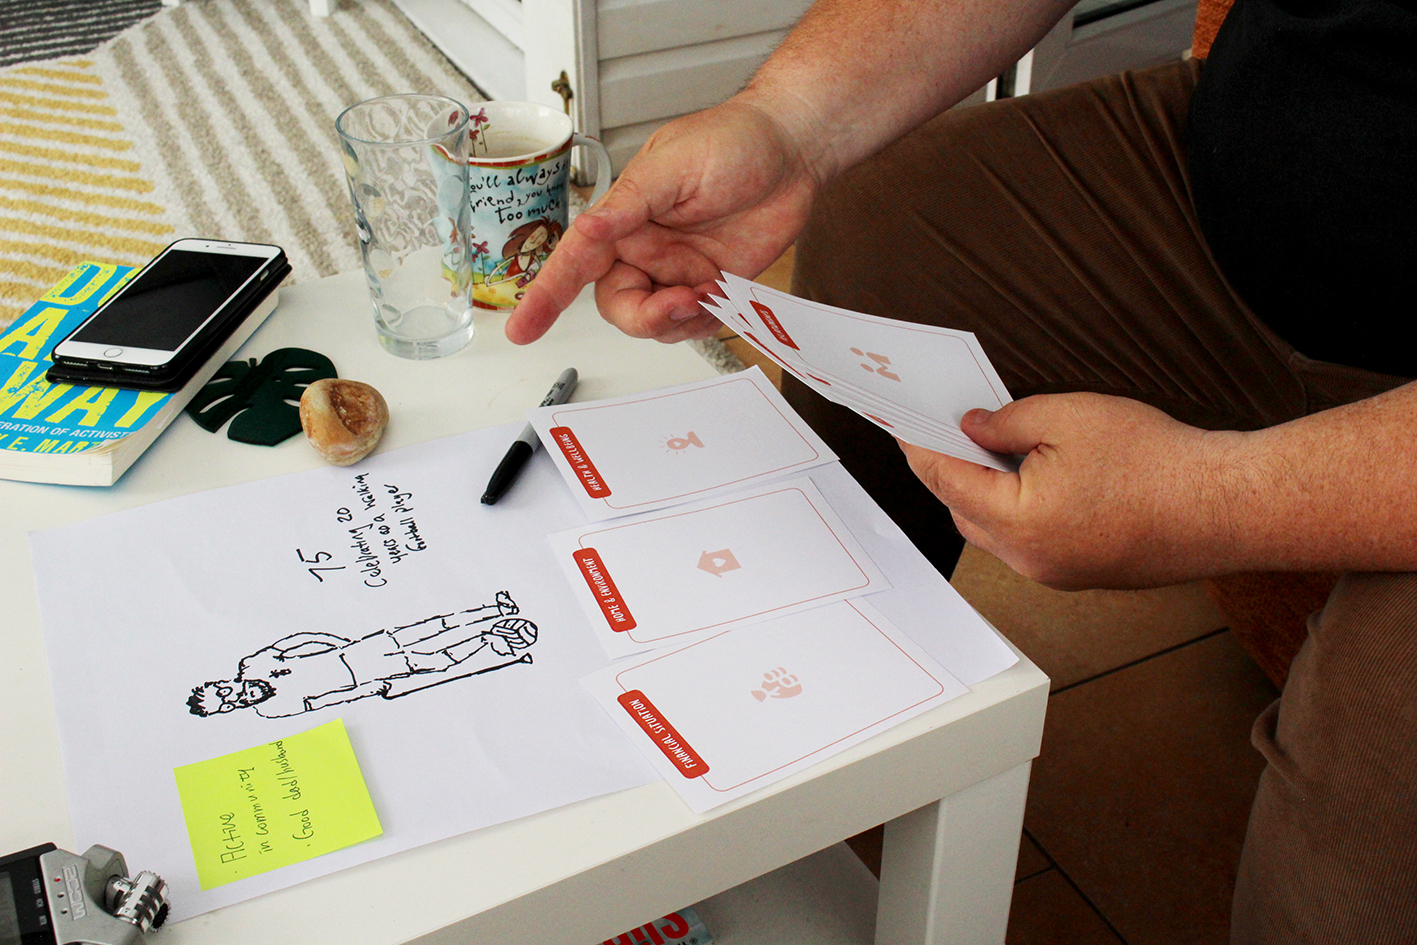 A research participant engaging with a creative activity around 'ideal support'